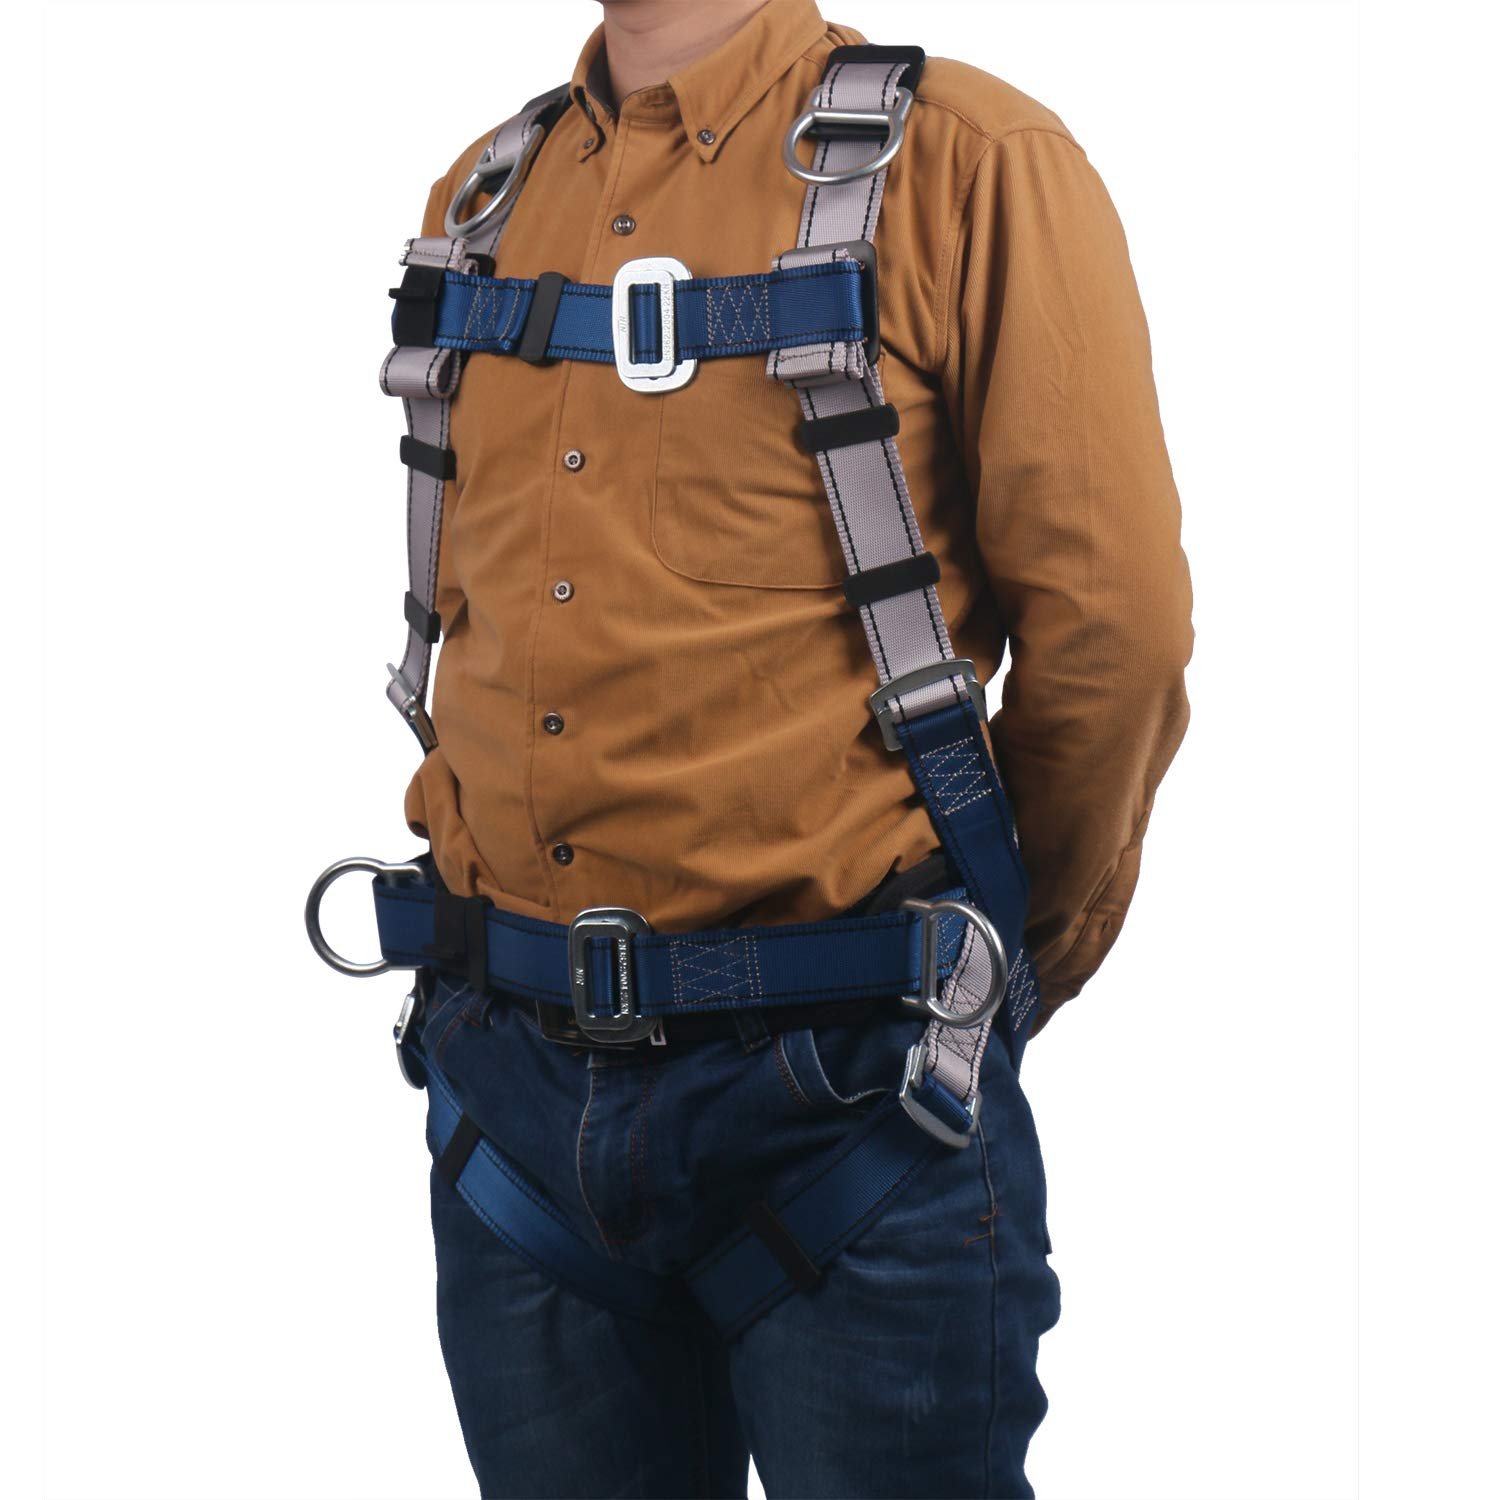 JINGYAT Full Body Safety Harness Fall Protection with 5 D-Ring,Universal Personal Protective Equipment (130-310 pound),Construction Industrial Tower Roofing Tool by JINGYAT (Image #6)